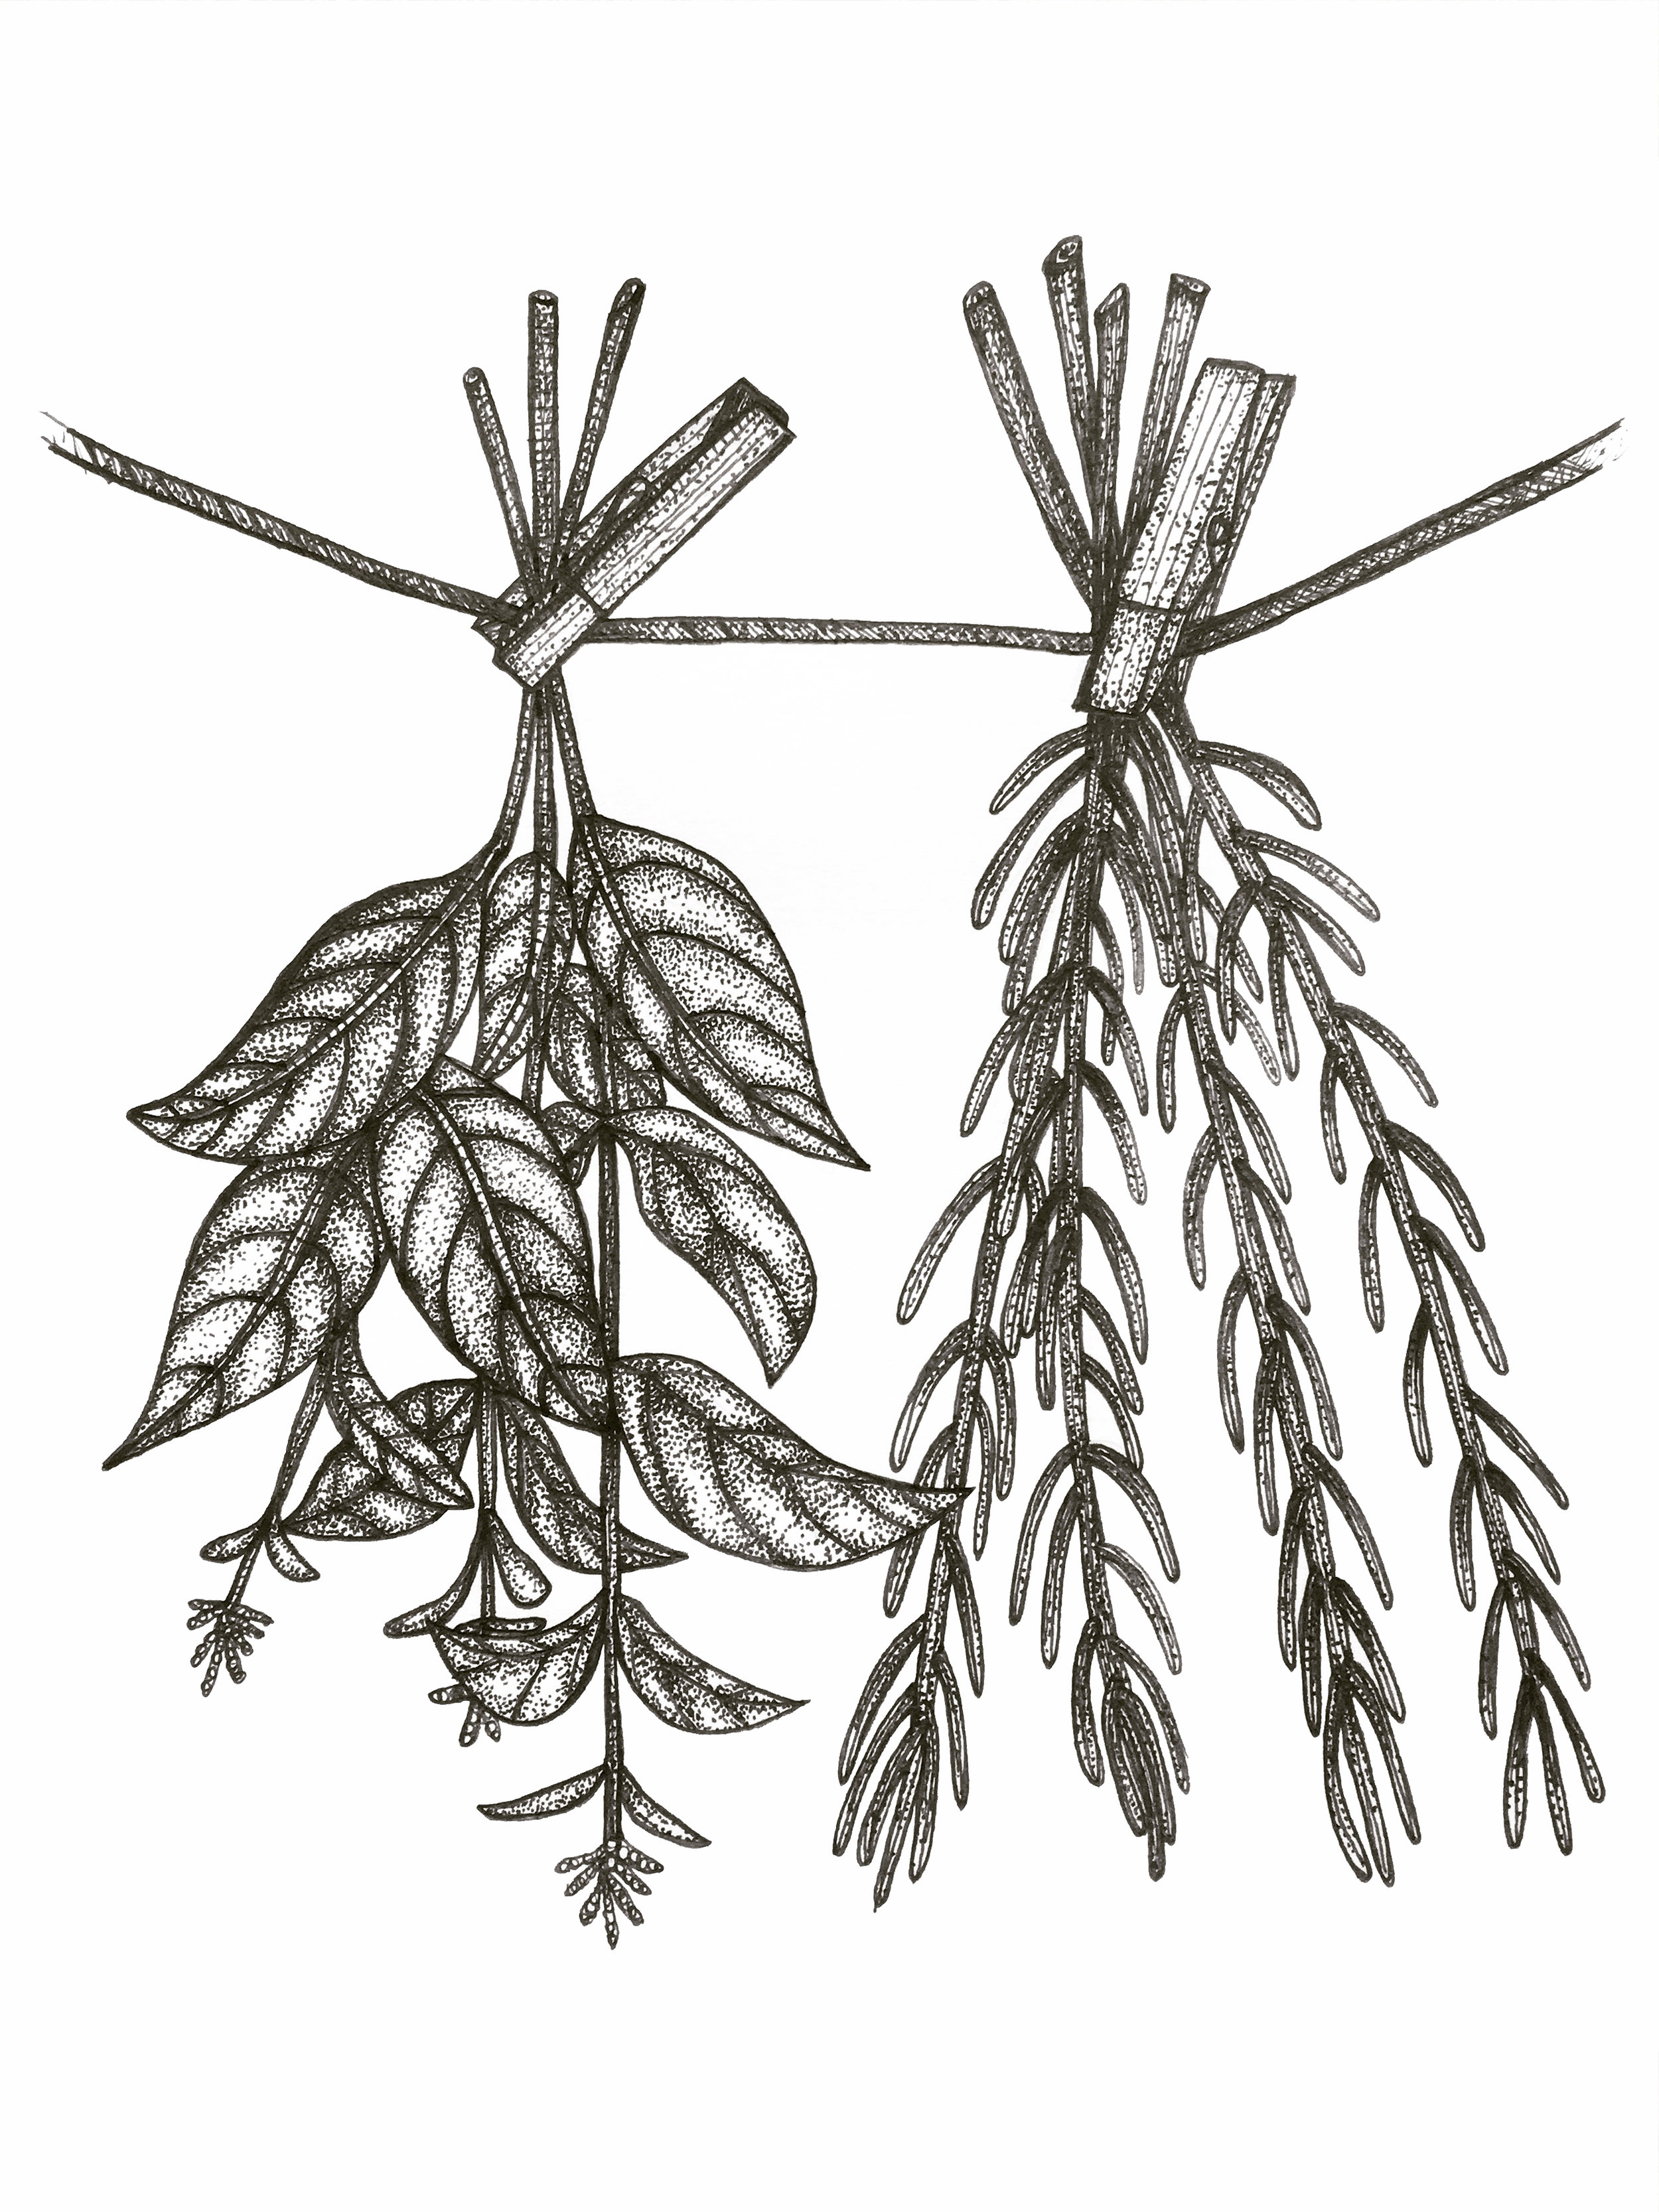 Drying herbs illustration from a project I am working on with Lynn.